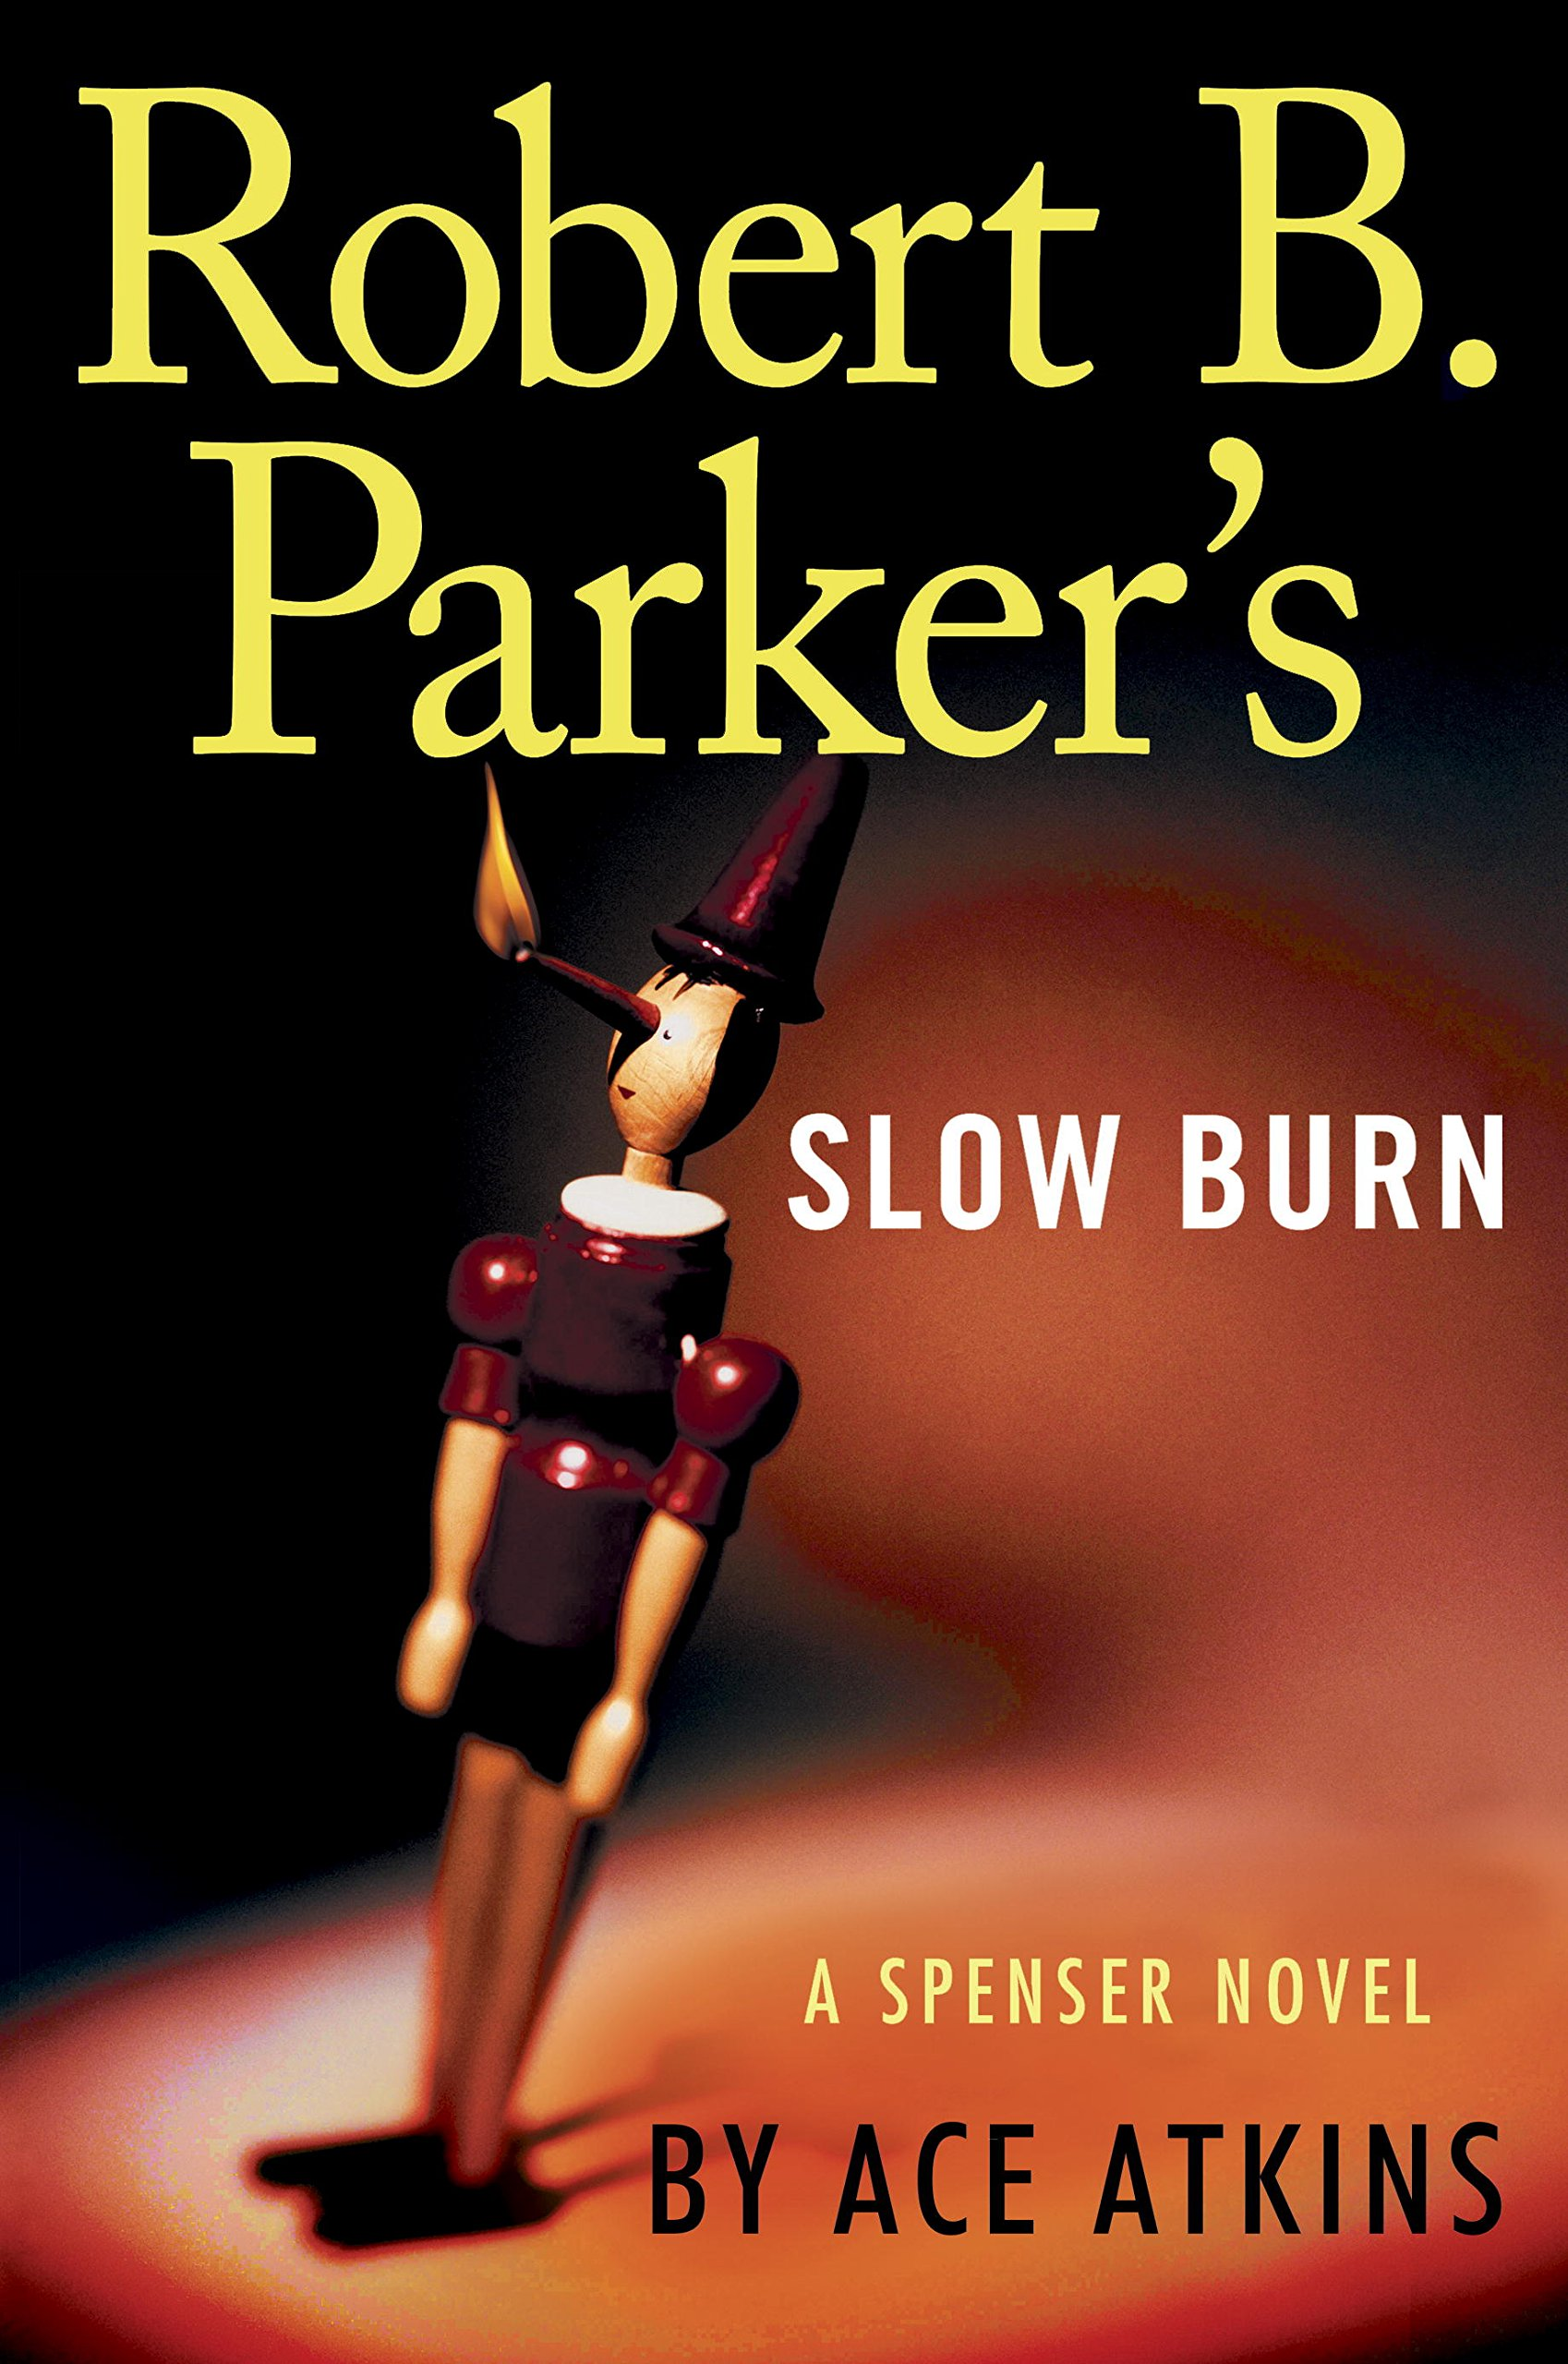 Robert b Parker's Slow Burn by Ace Atkins